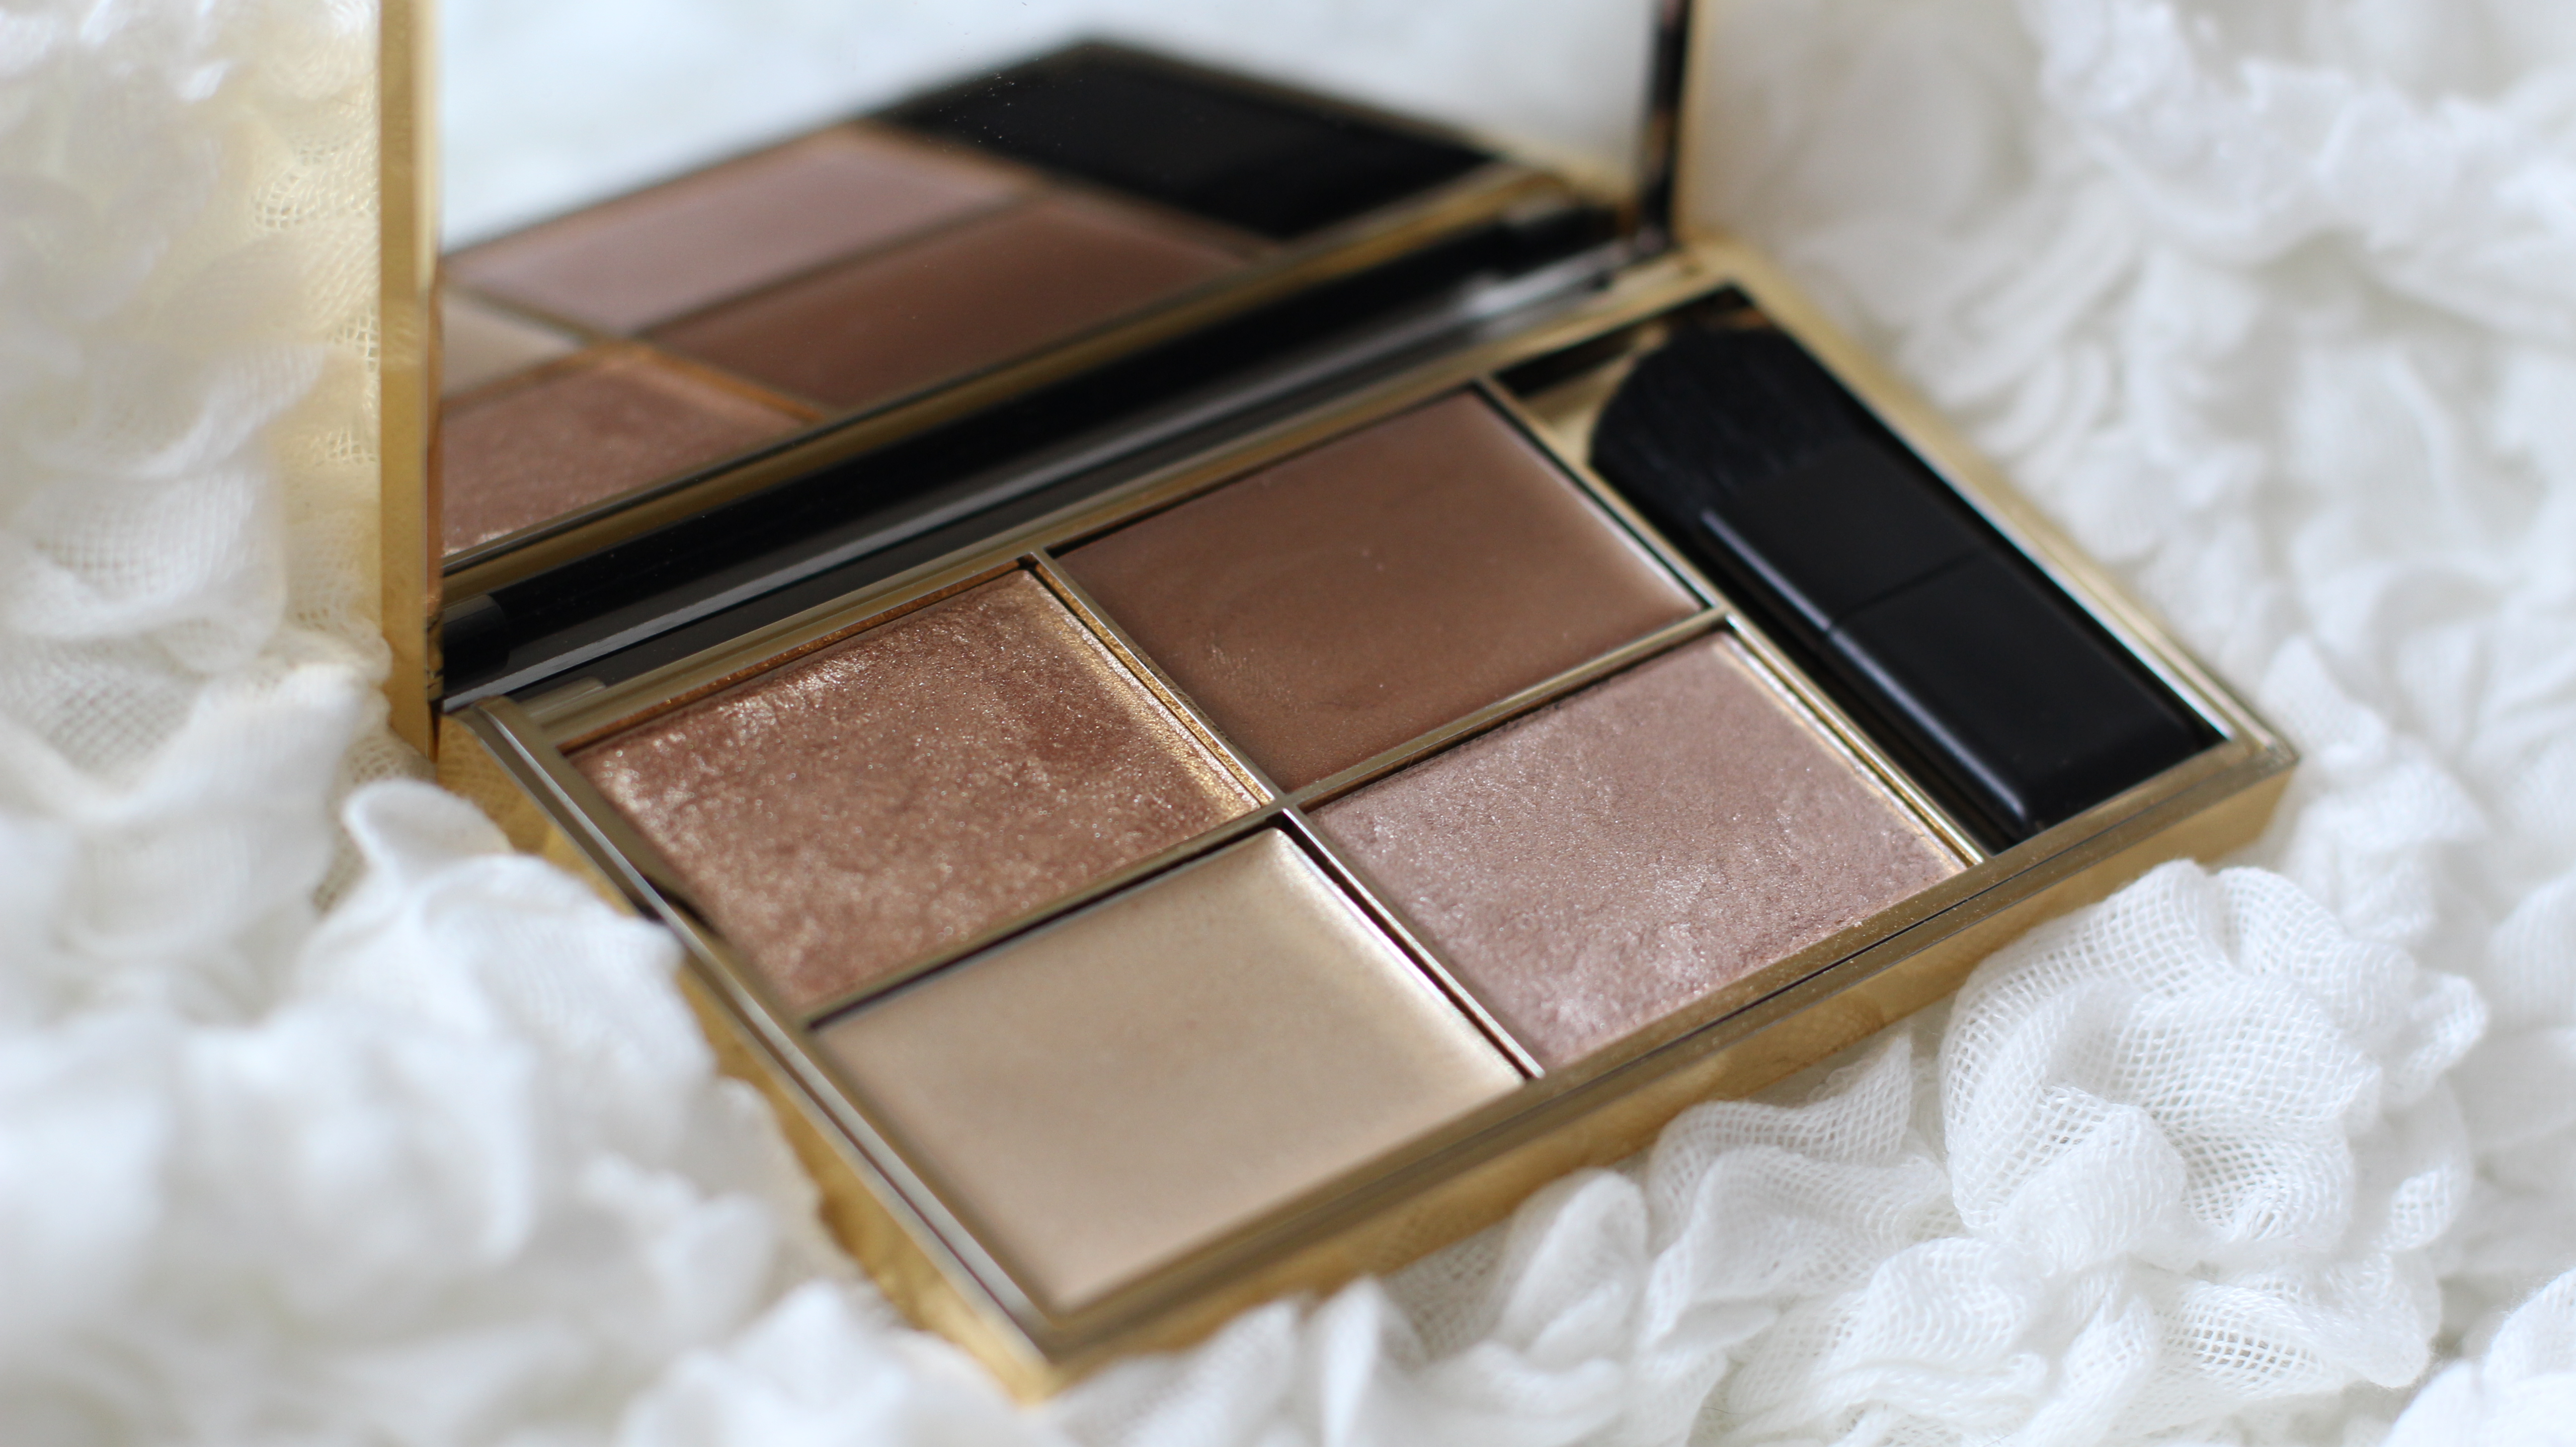 cleopatra's kiss highlight sleek